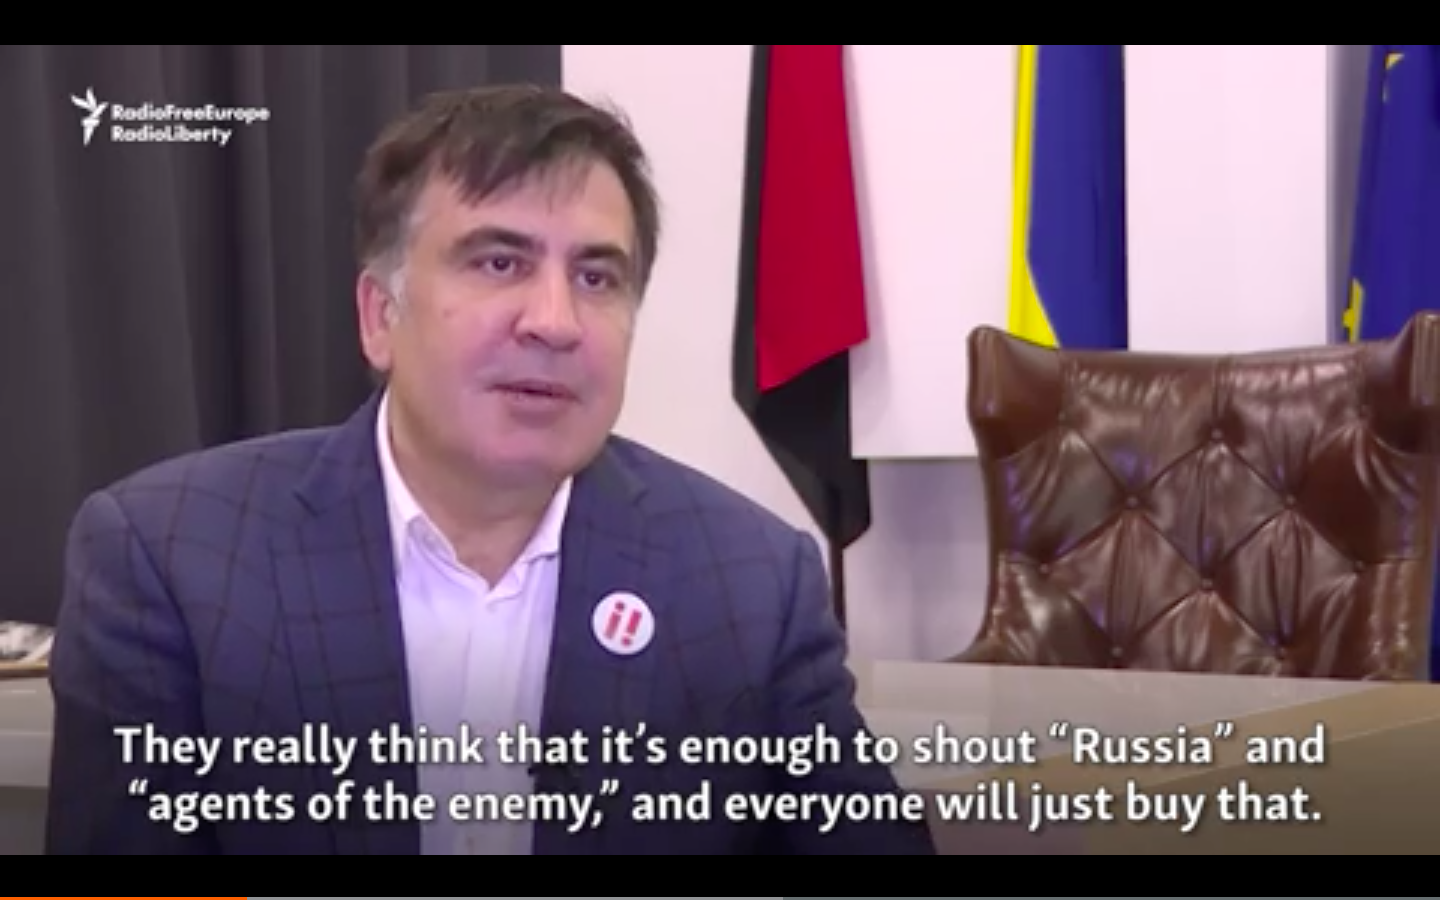 Saakashvili may face extradition after losing Ukraine court appeal